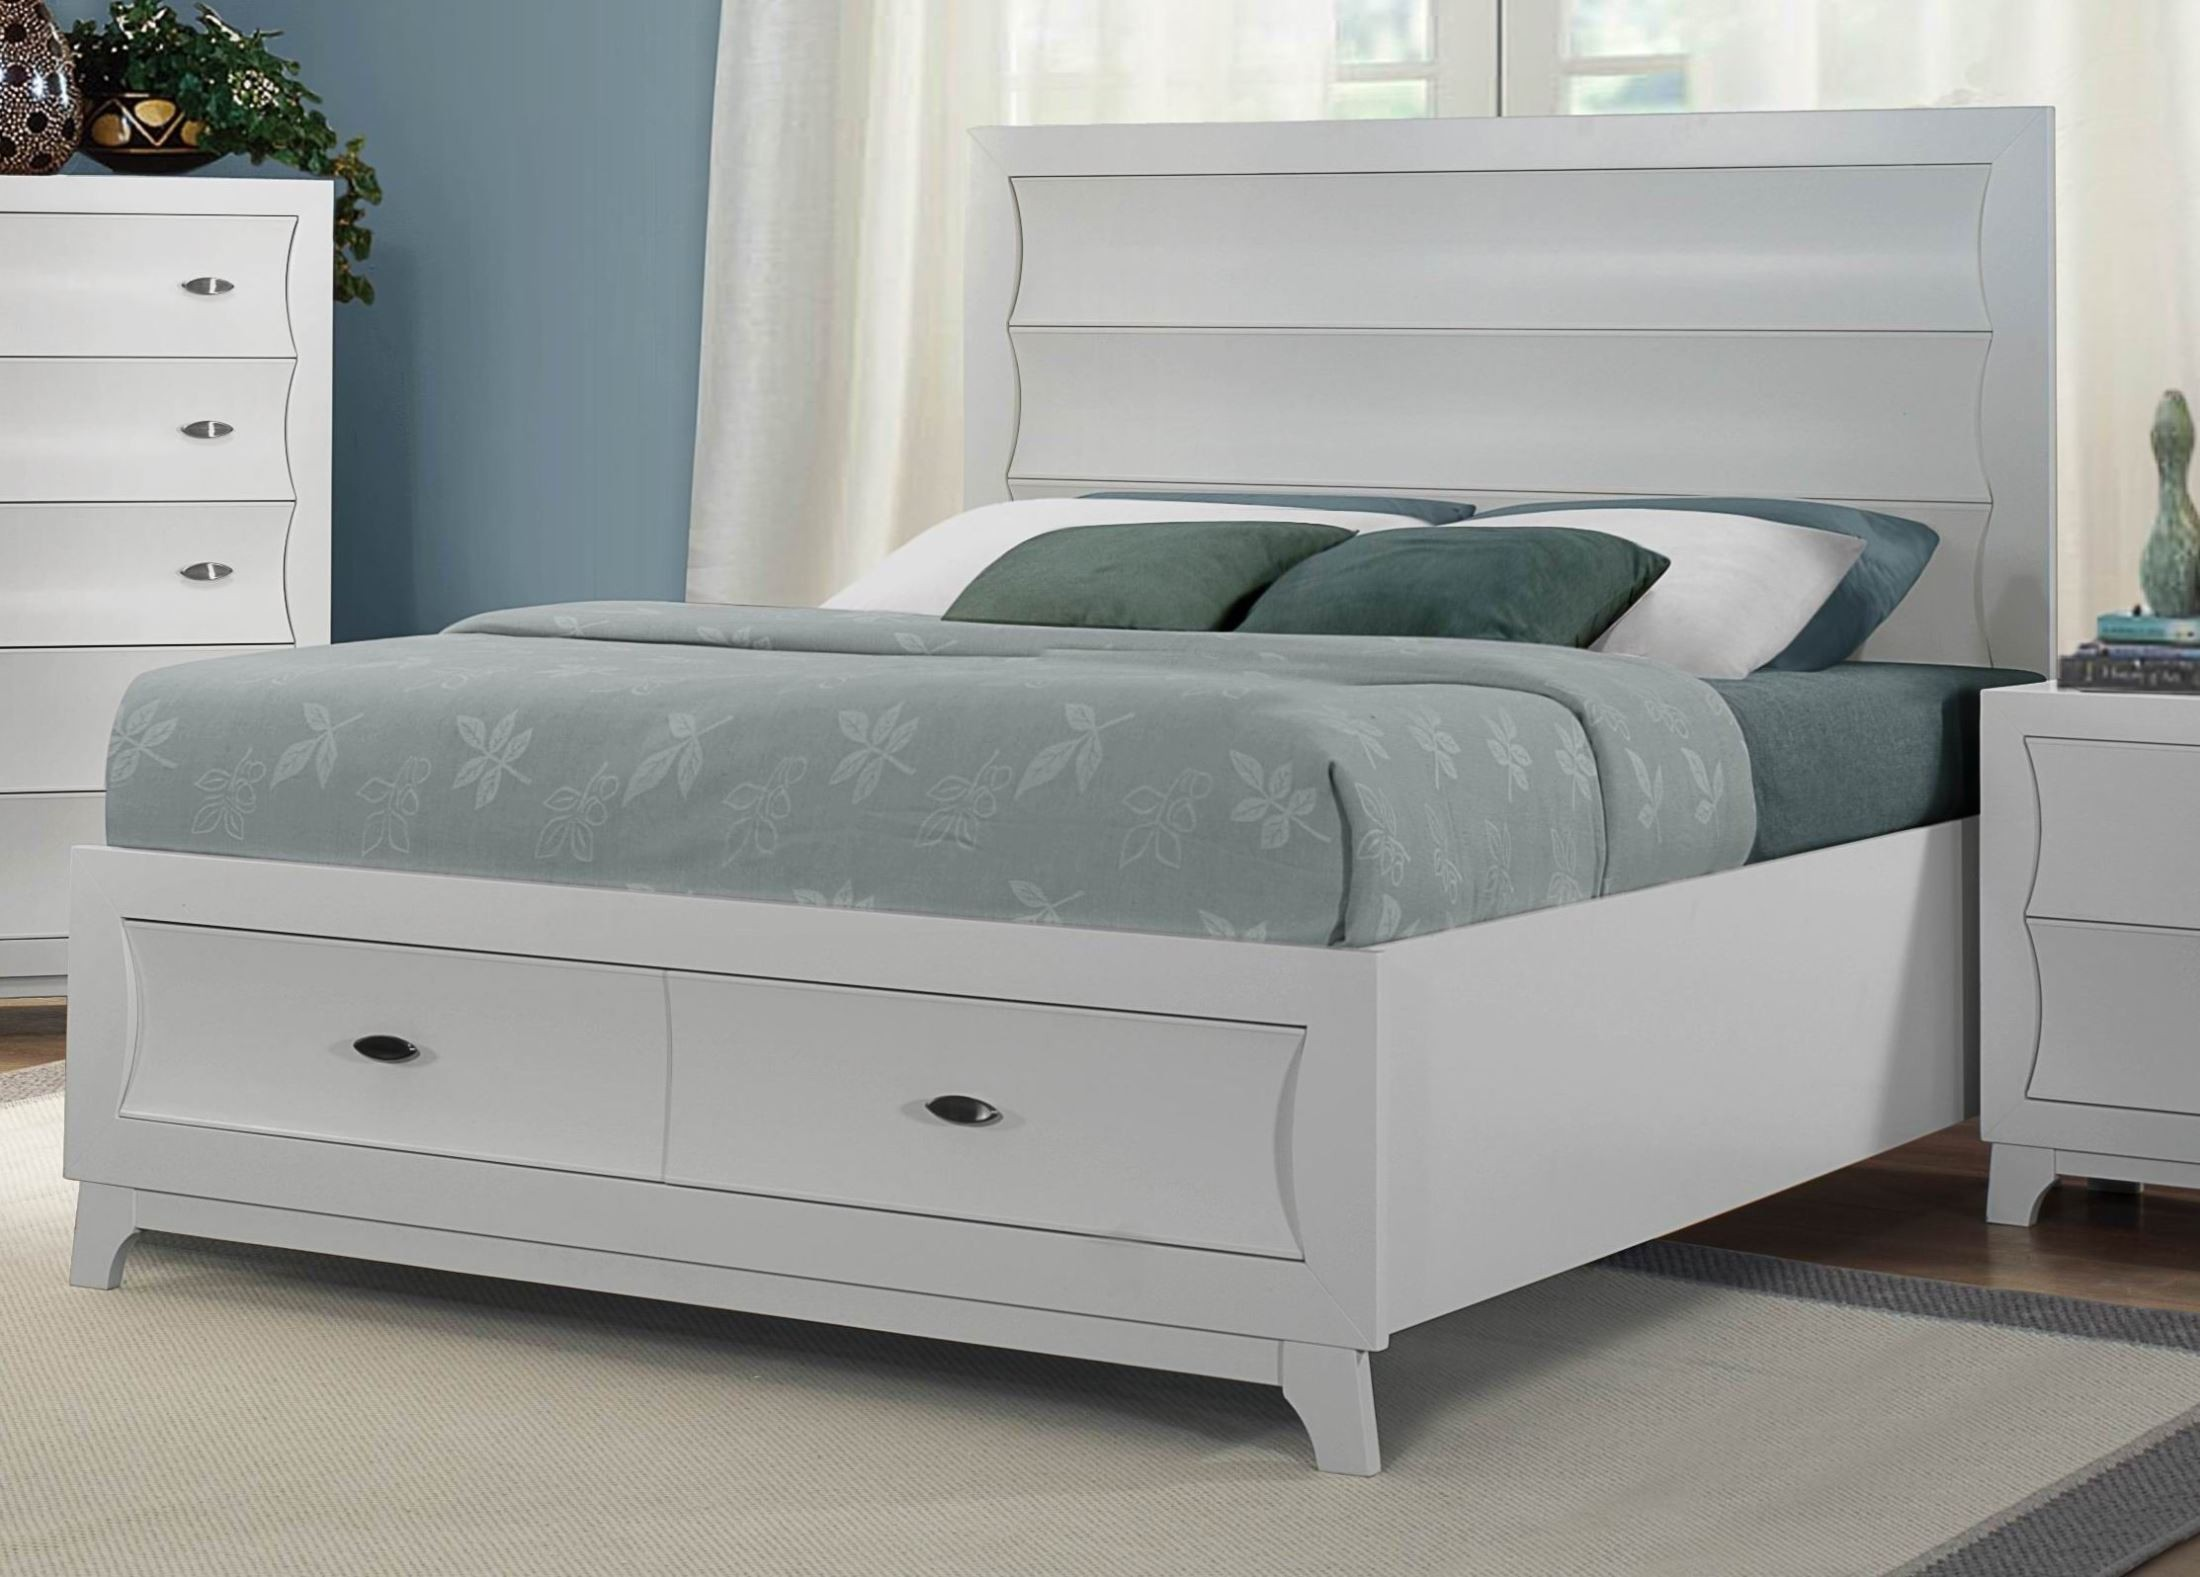 Zandra white platform storage bedroom set from homelegance for White bedroom set with storage